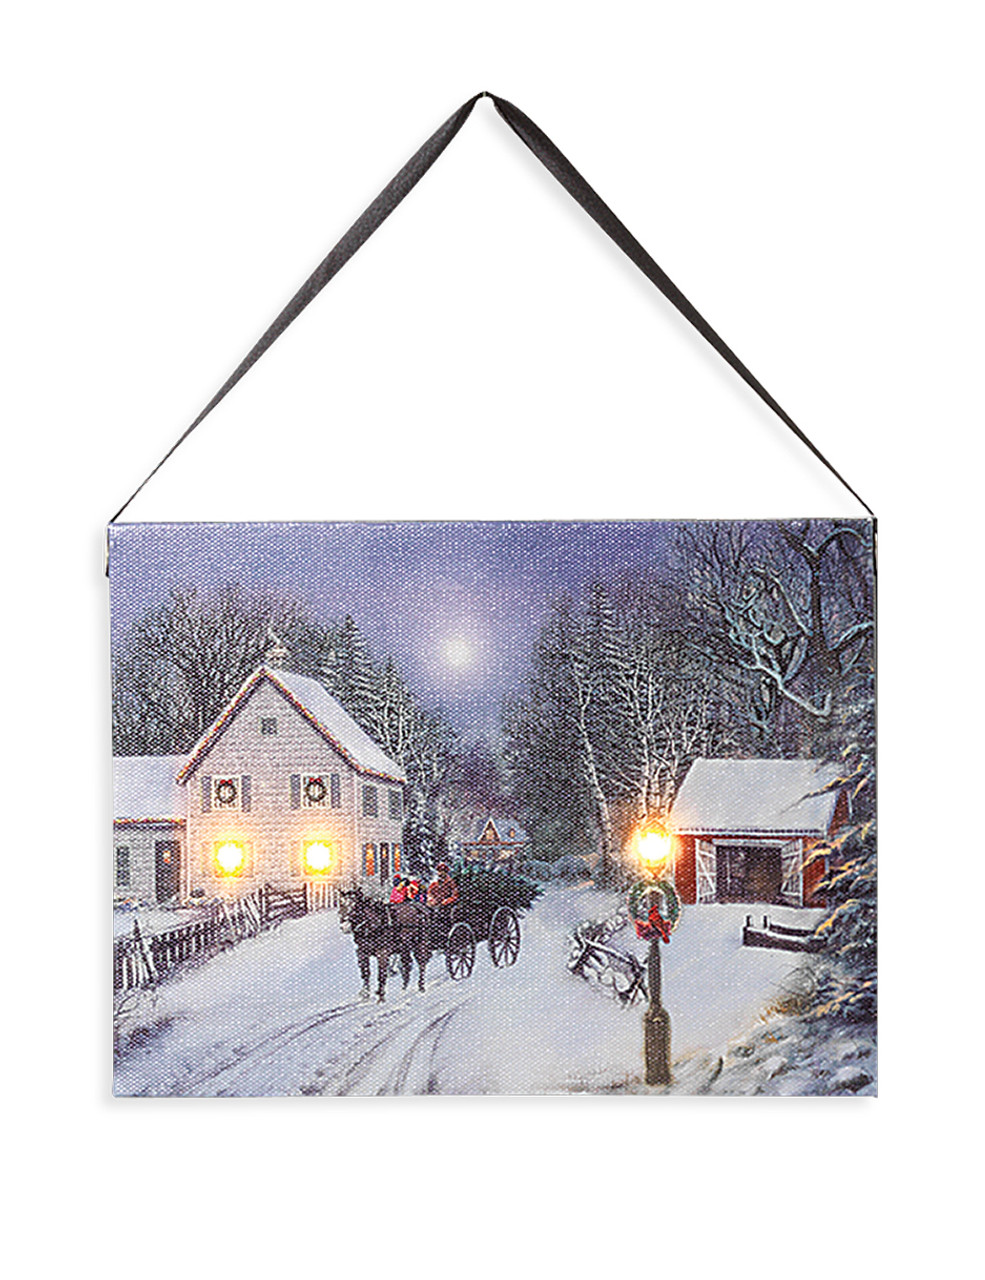 Lighted Holiday Canvas 6x8 Horizontal Snowy Country House Scene With Decorations Horses And Light Up Windows And Lantern